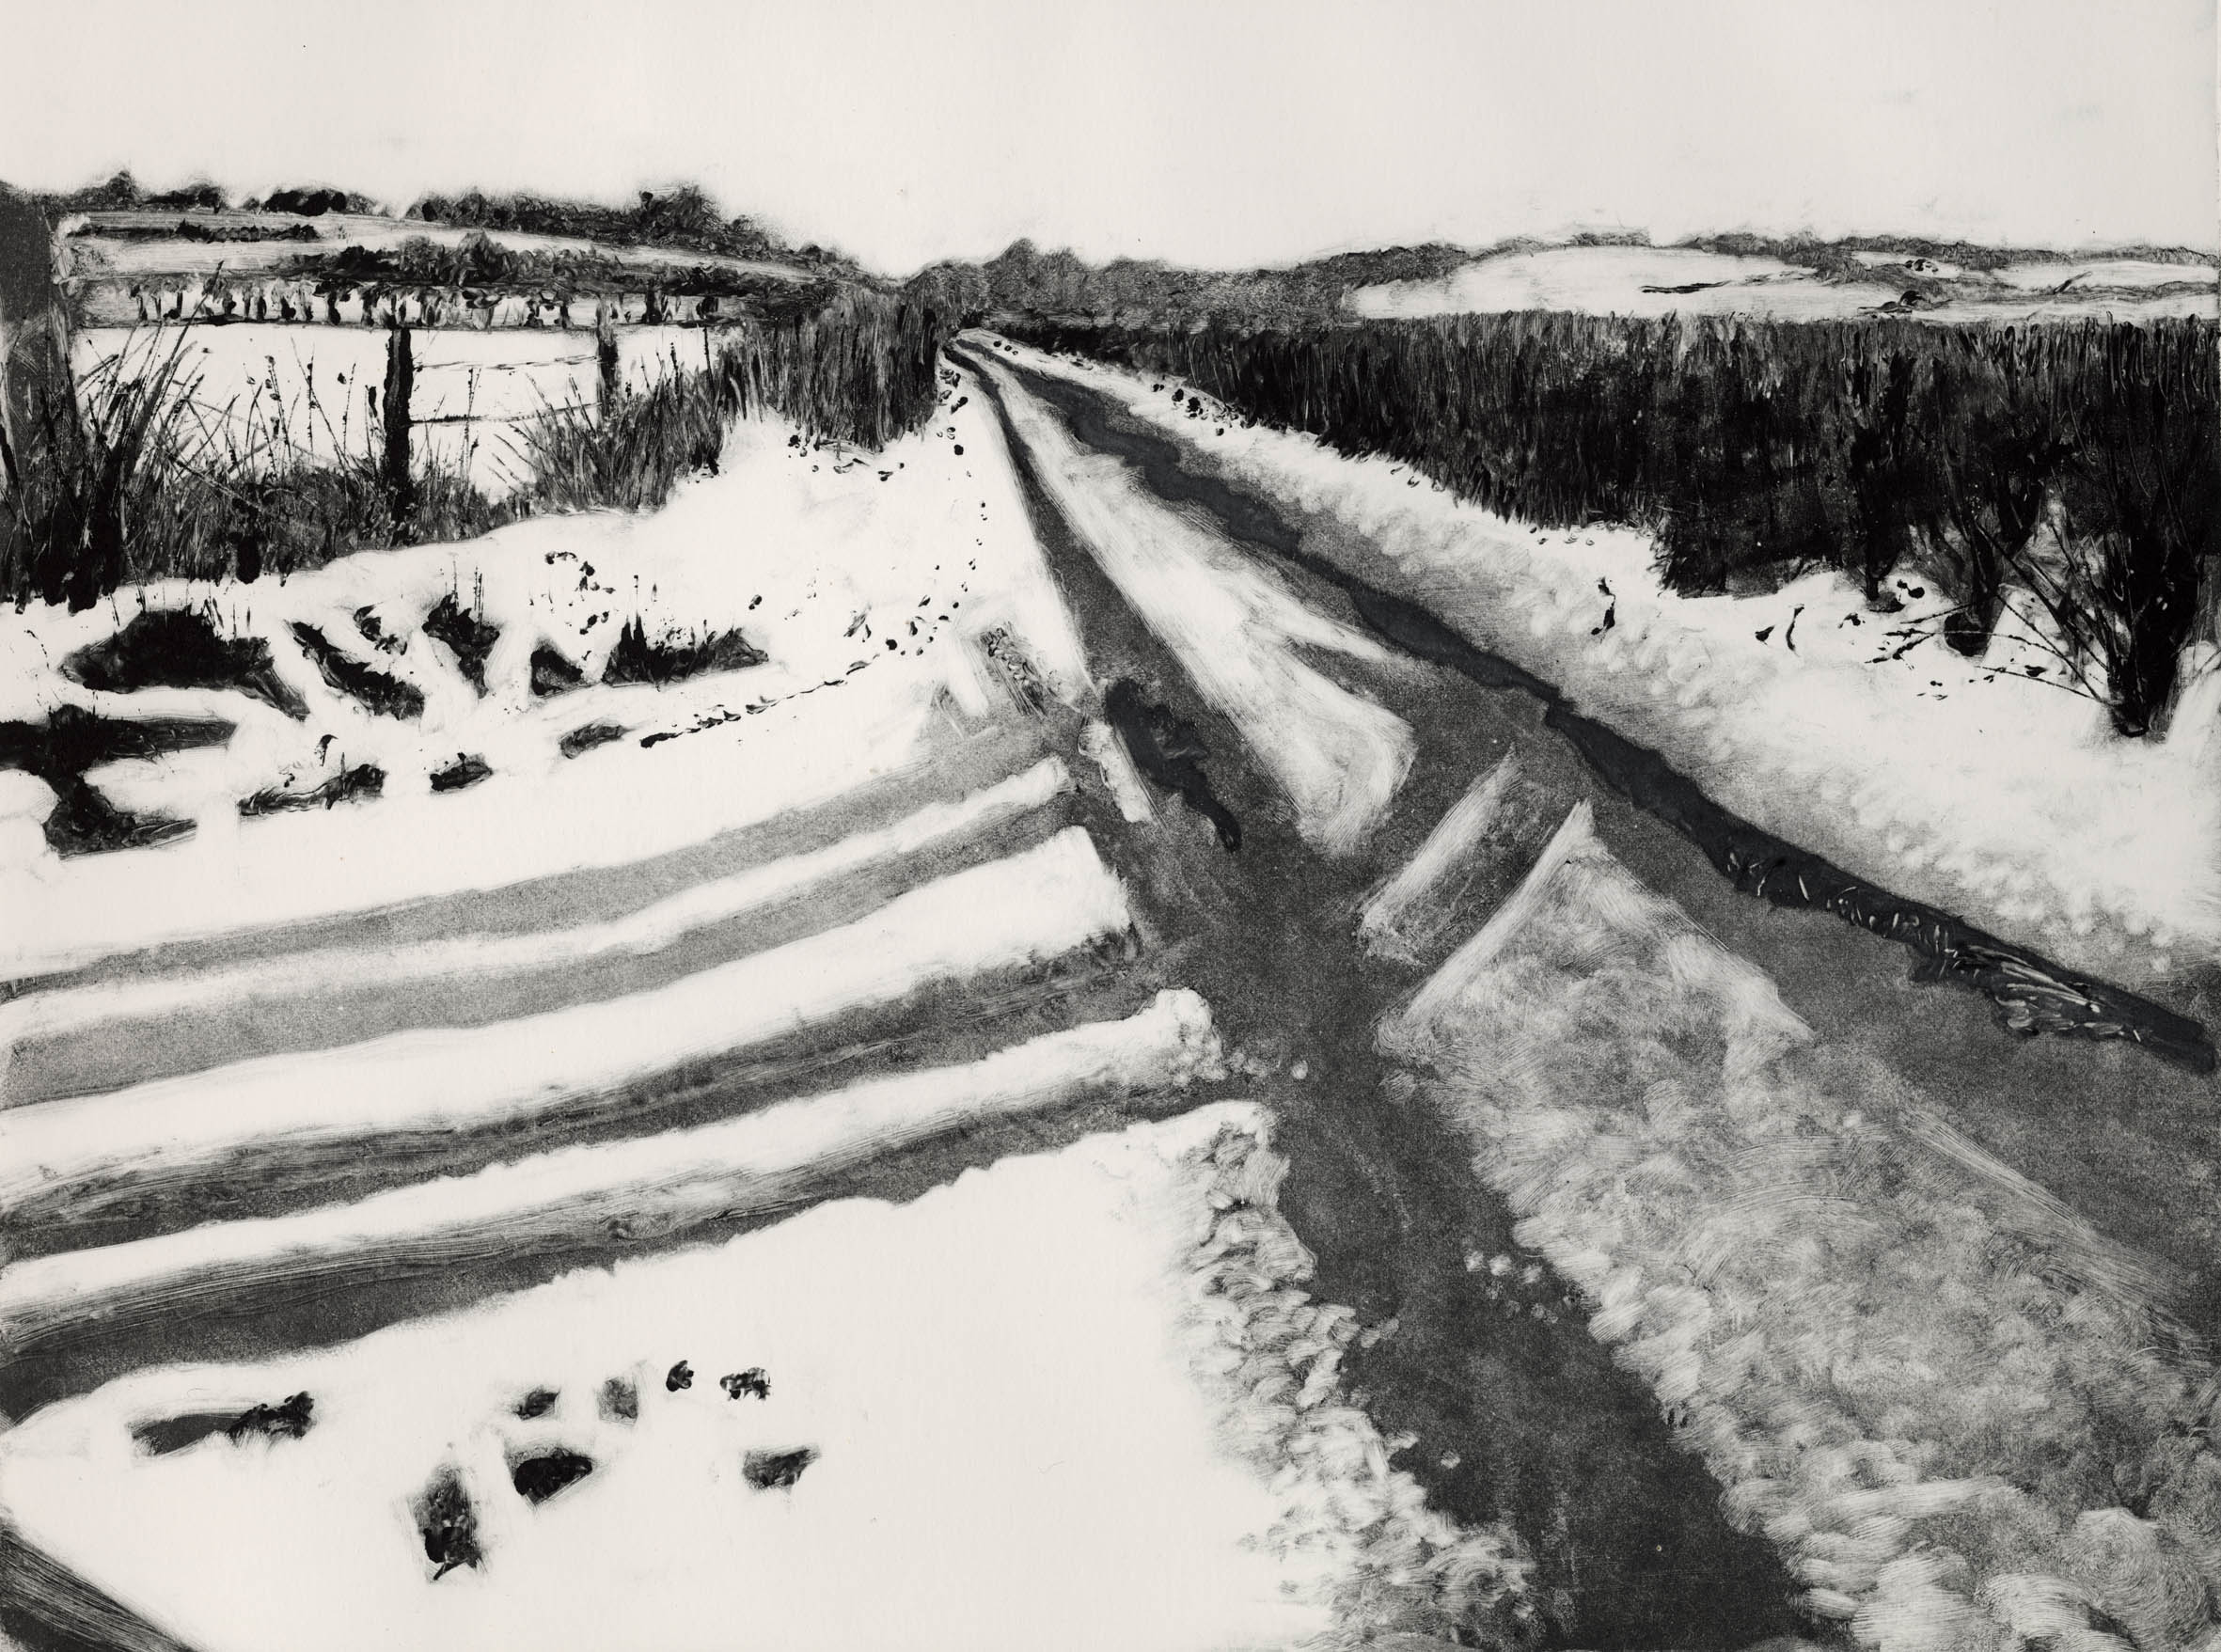 Monotype titled Snow at Southstoke printed in 2009